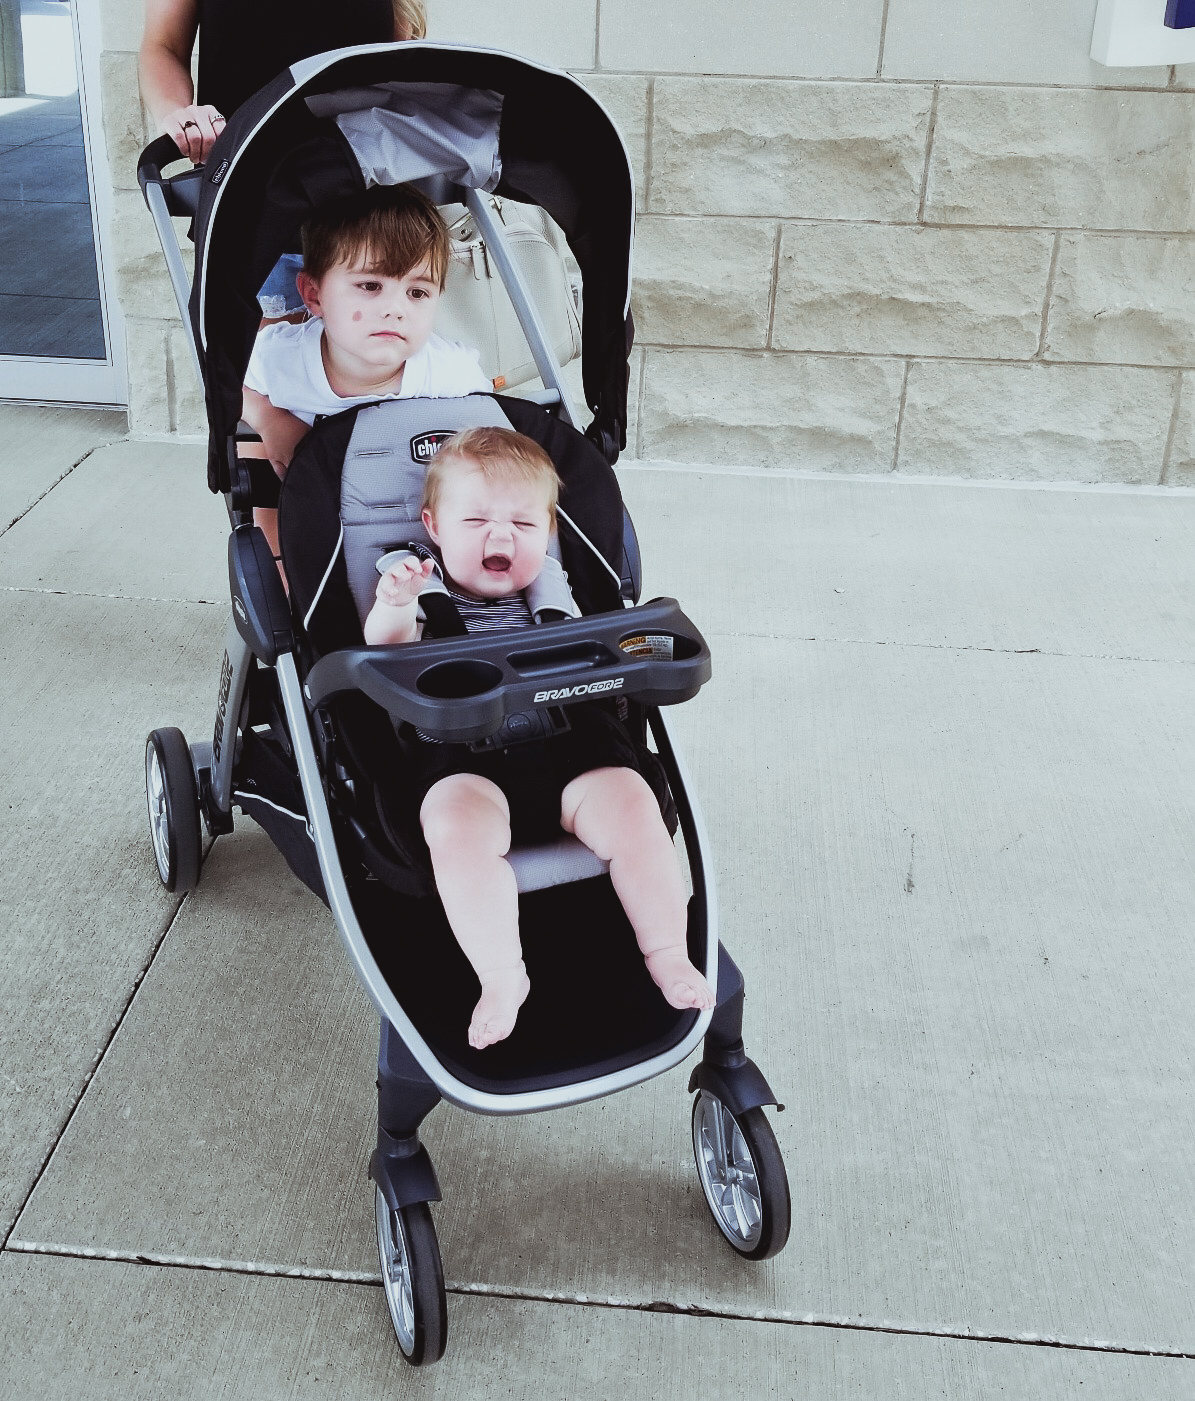 Chicco BravoFor2 Double Stroller Review: Our weekend recap featuring a review of the Chicco BravoFor2 Double Stroller. If you're looking for the best double stroller for 2 kids, you'll want to check out this review. The Chicco Bravo for 2 is a top tandem double stroller and perfect for your family's weekend adventures!